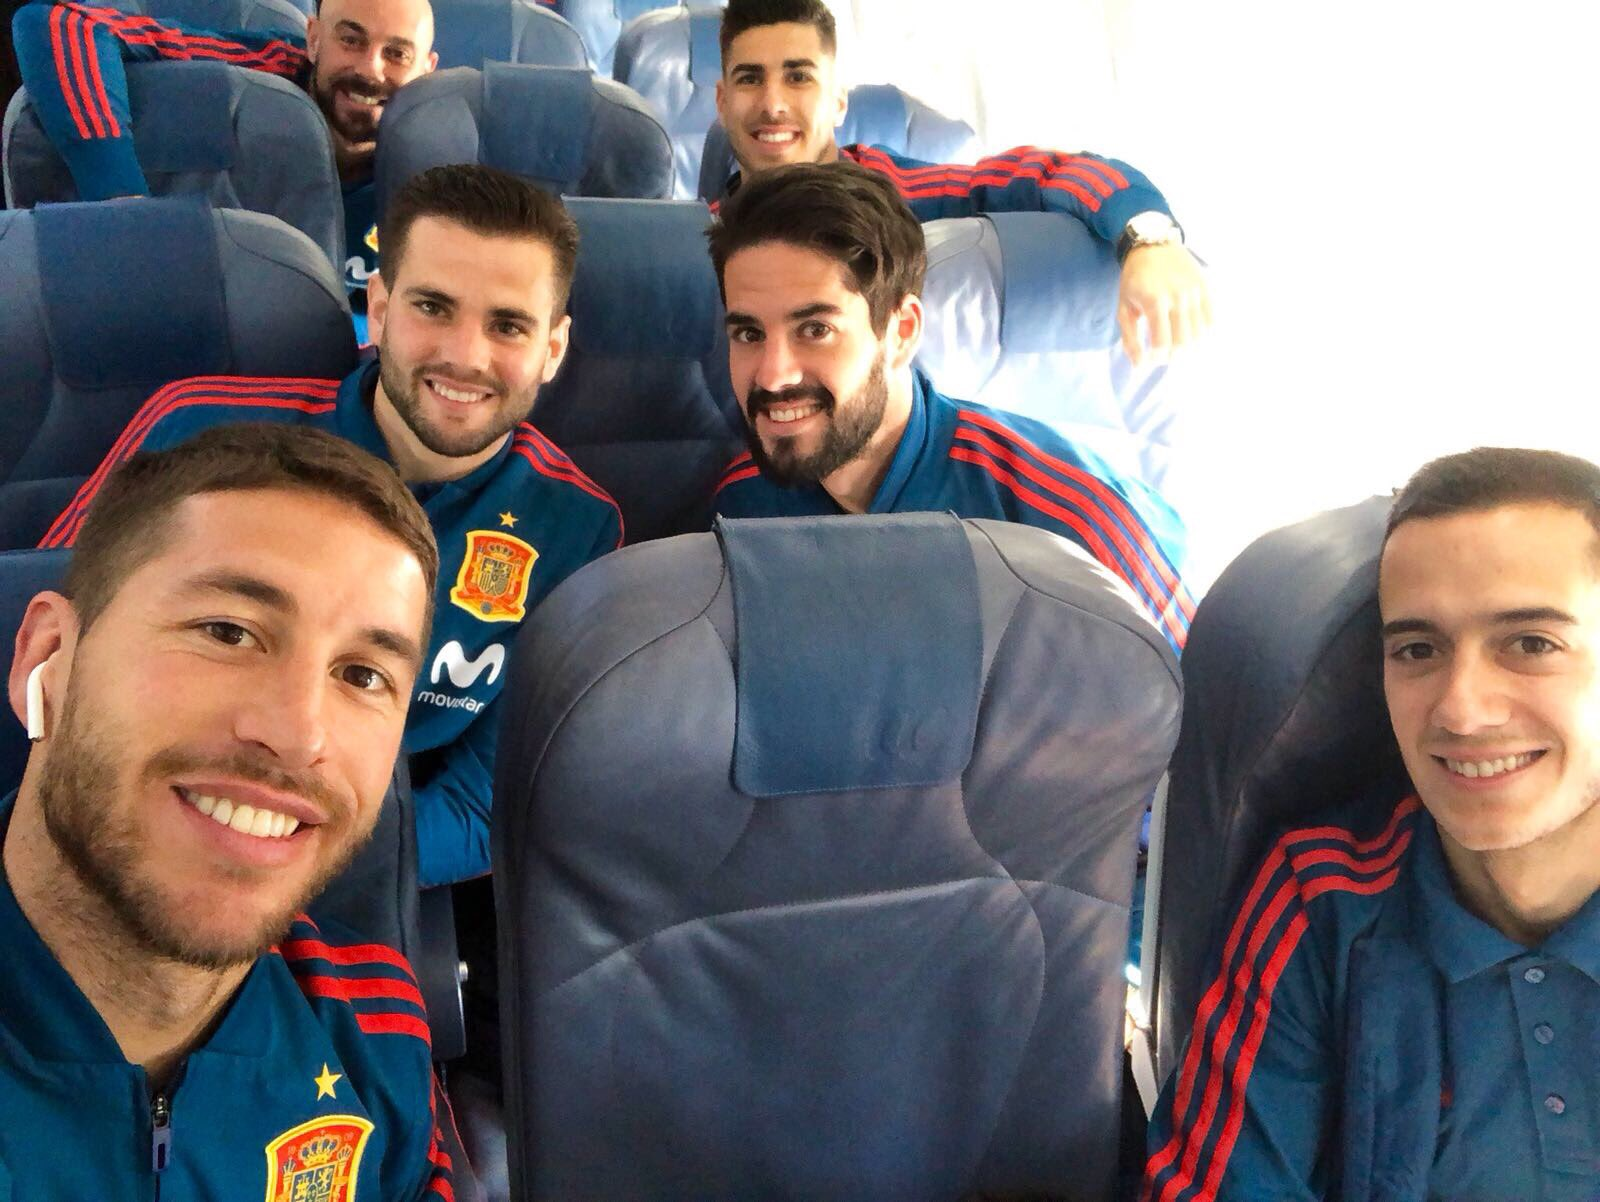 Take-off! �� #VamosEspaña https://t.co/4Wz1AsXIaV